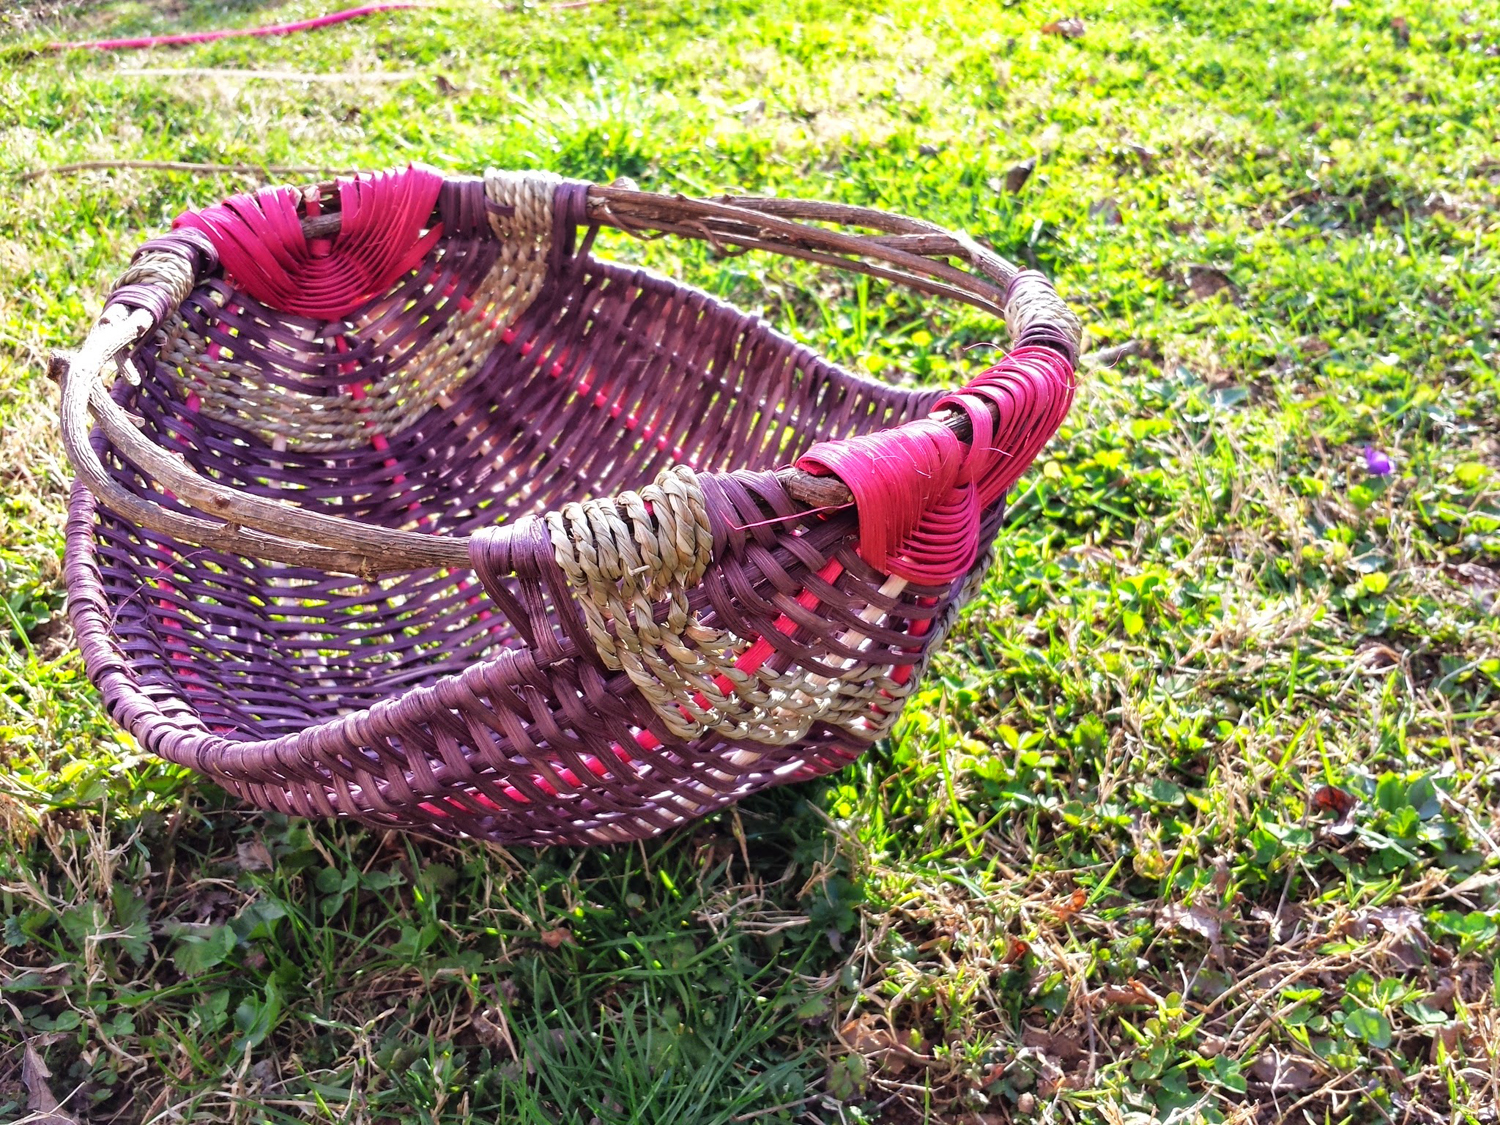 Potato basket handwoven by Kristen Necessary, 2014.